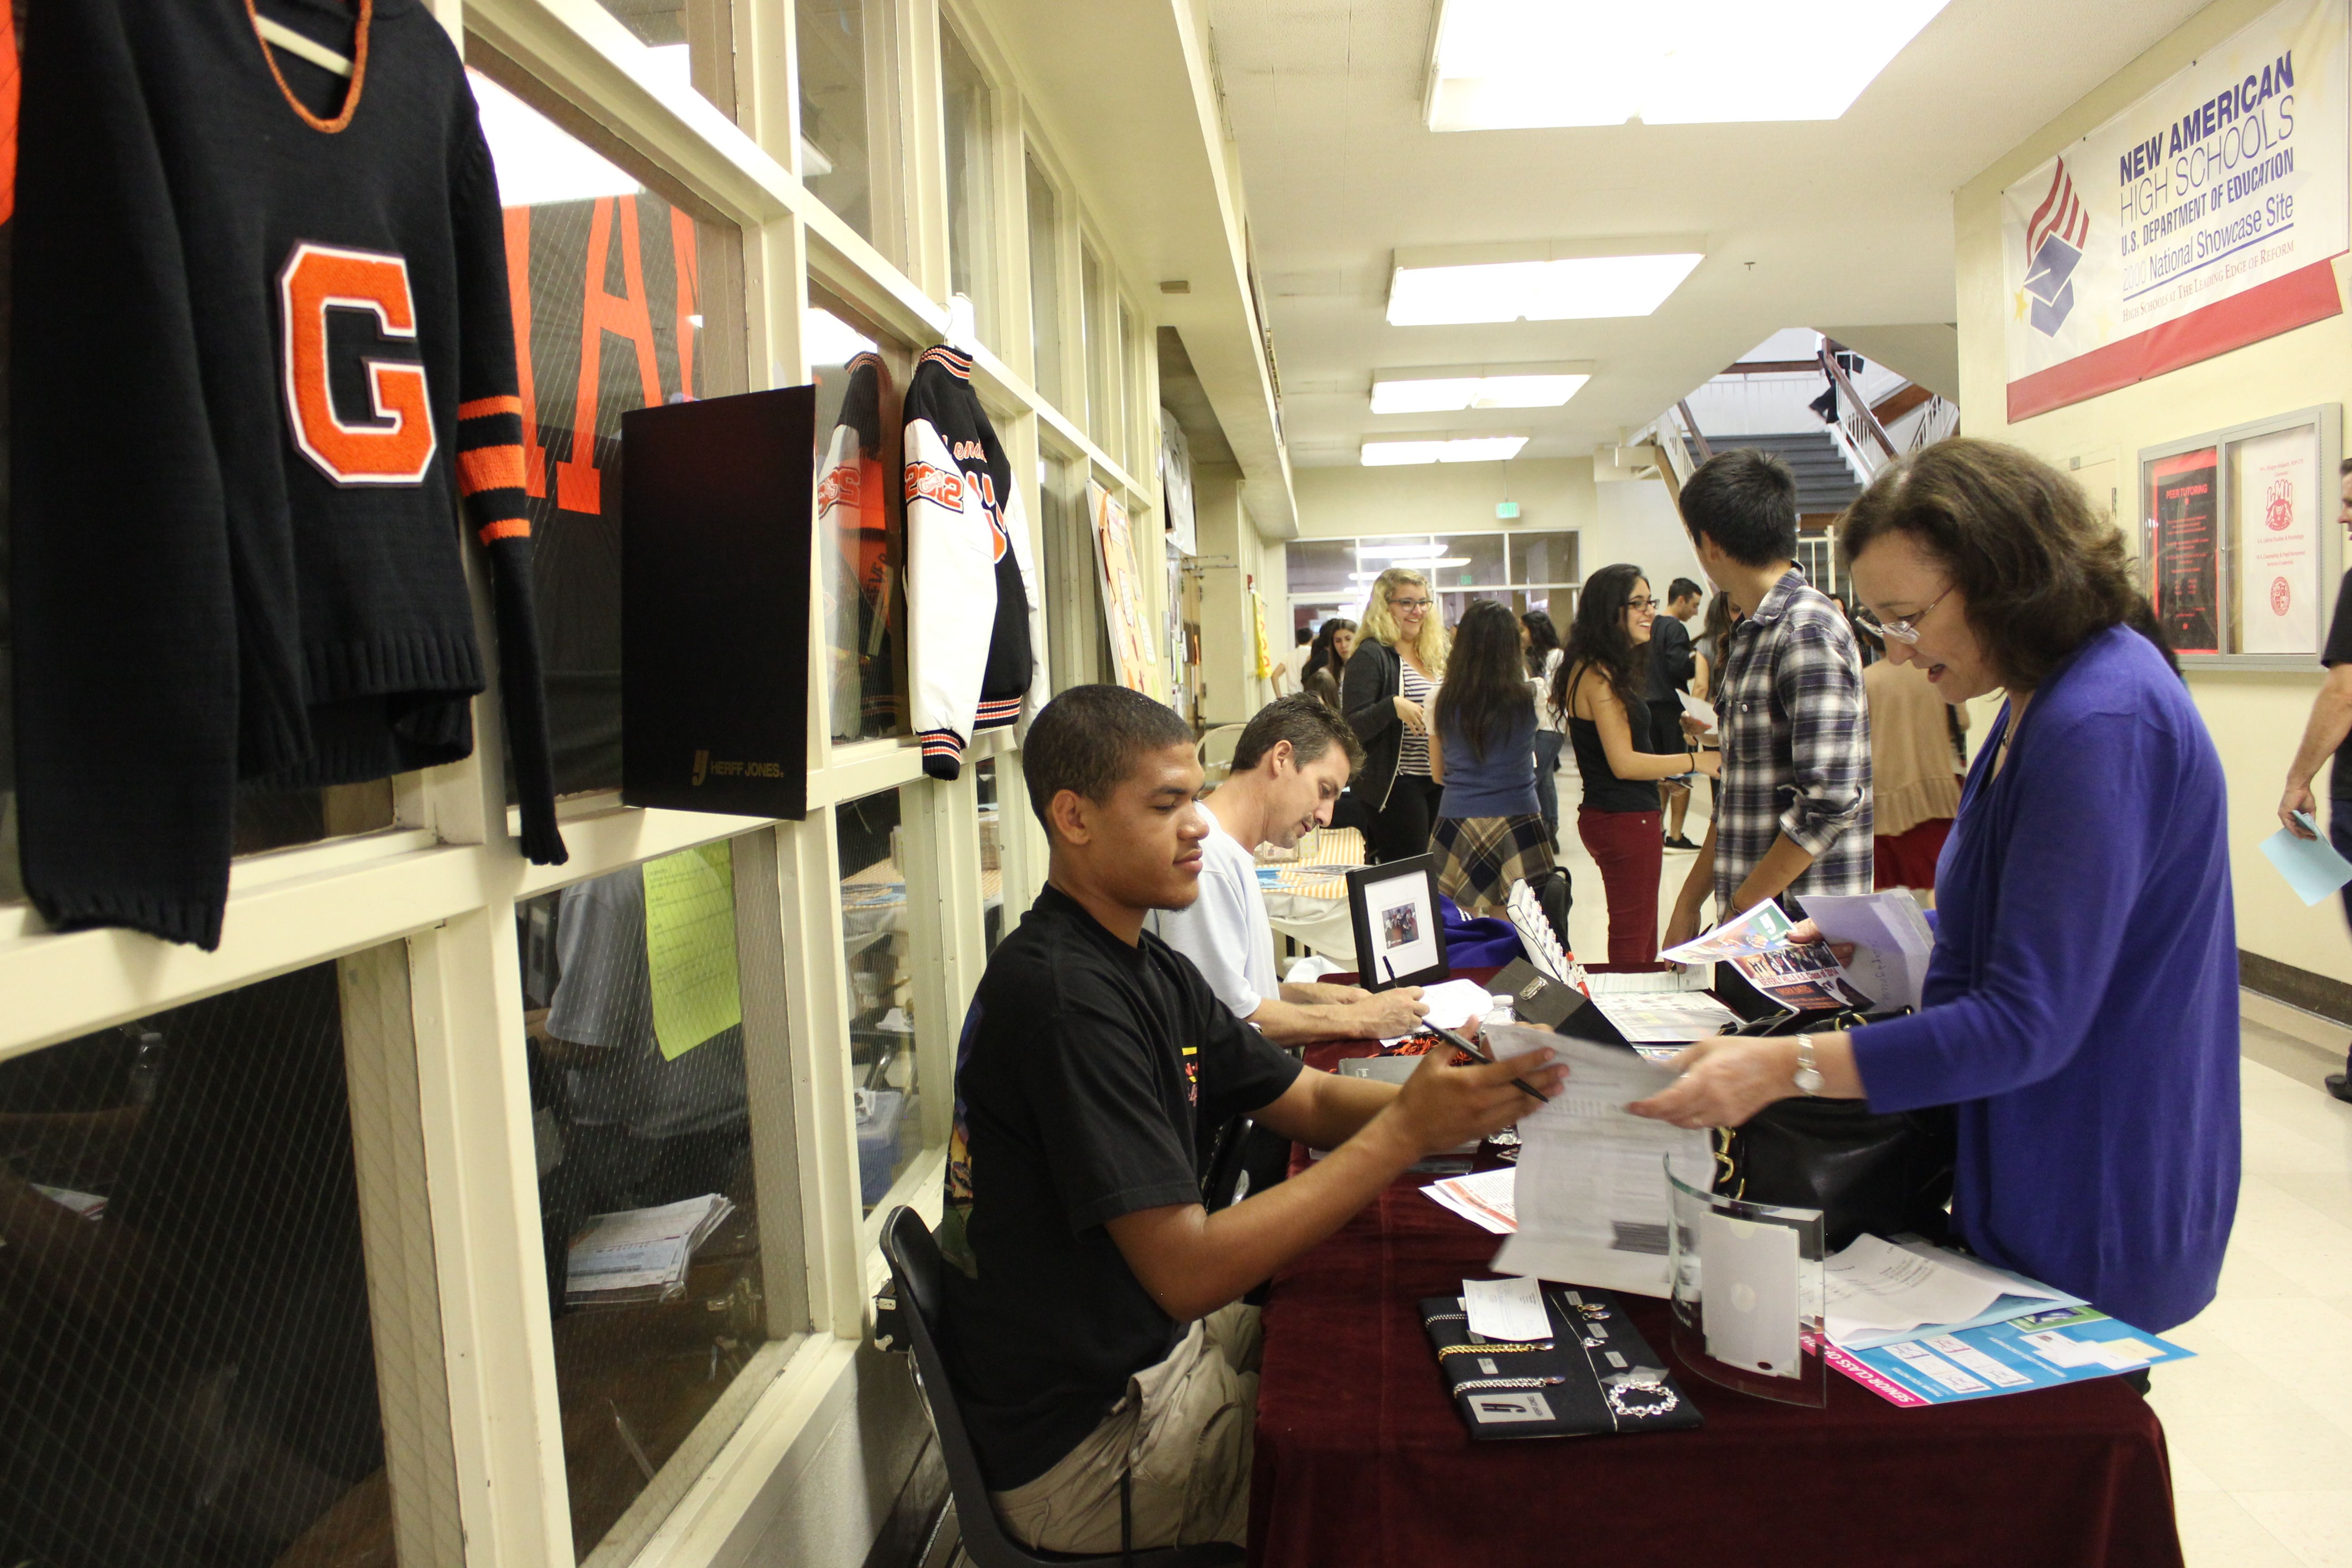 Herff Jones explains pricing details to parents at Back To School Night's booth.